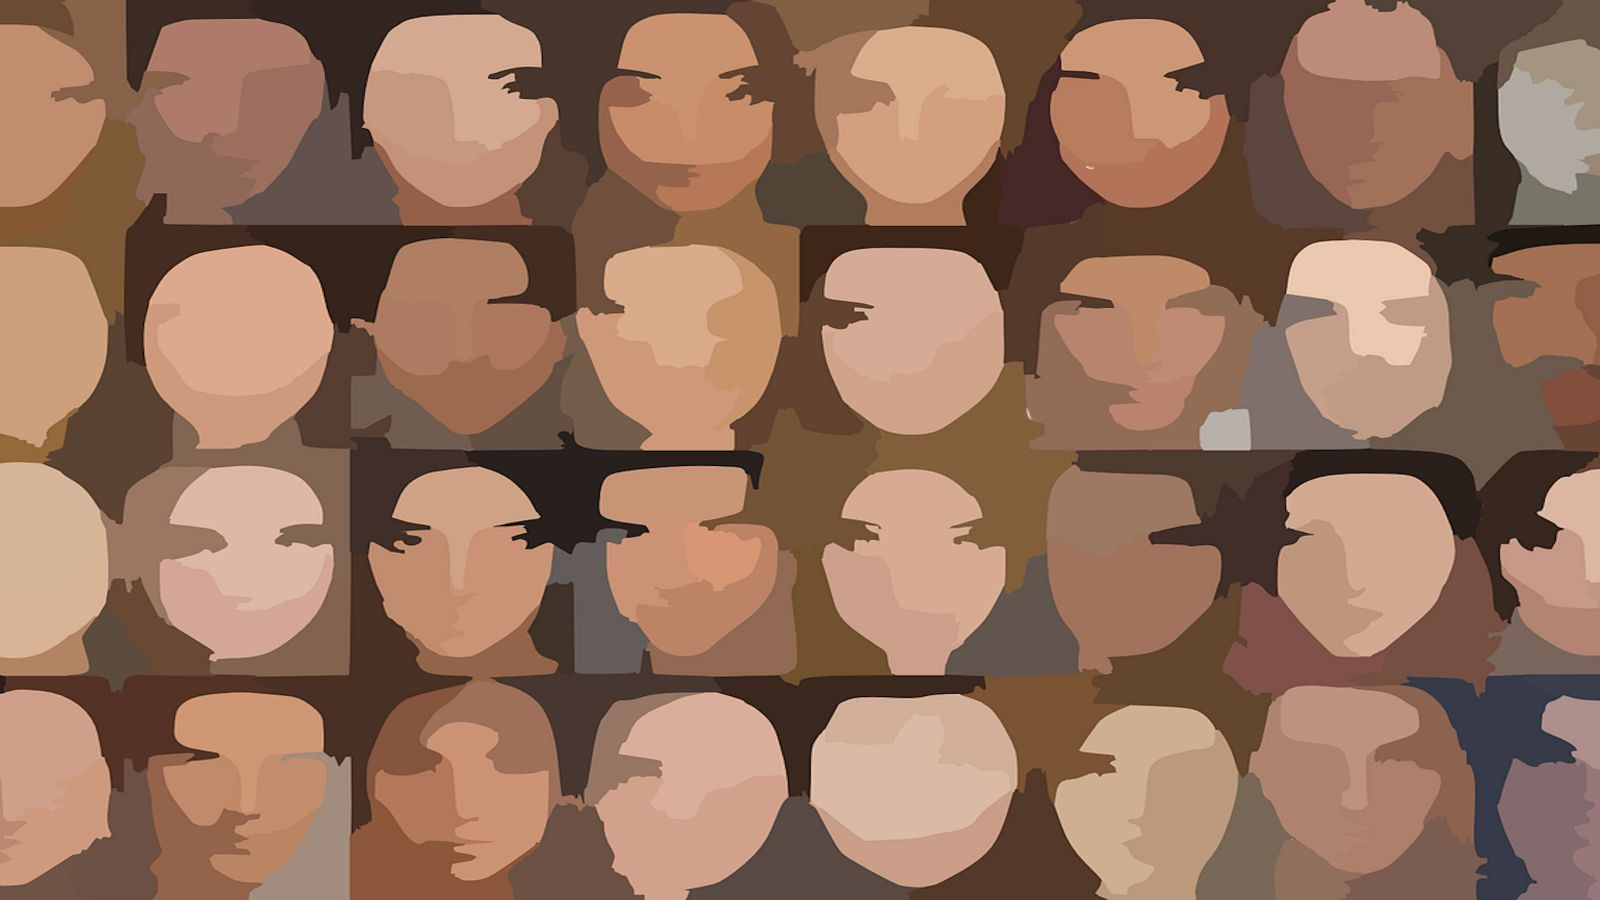 An image of many animated but blurry faces.